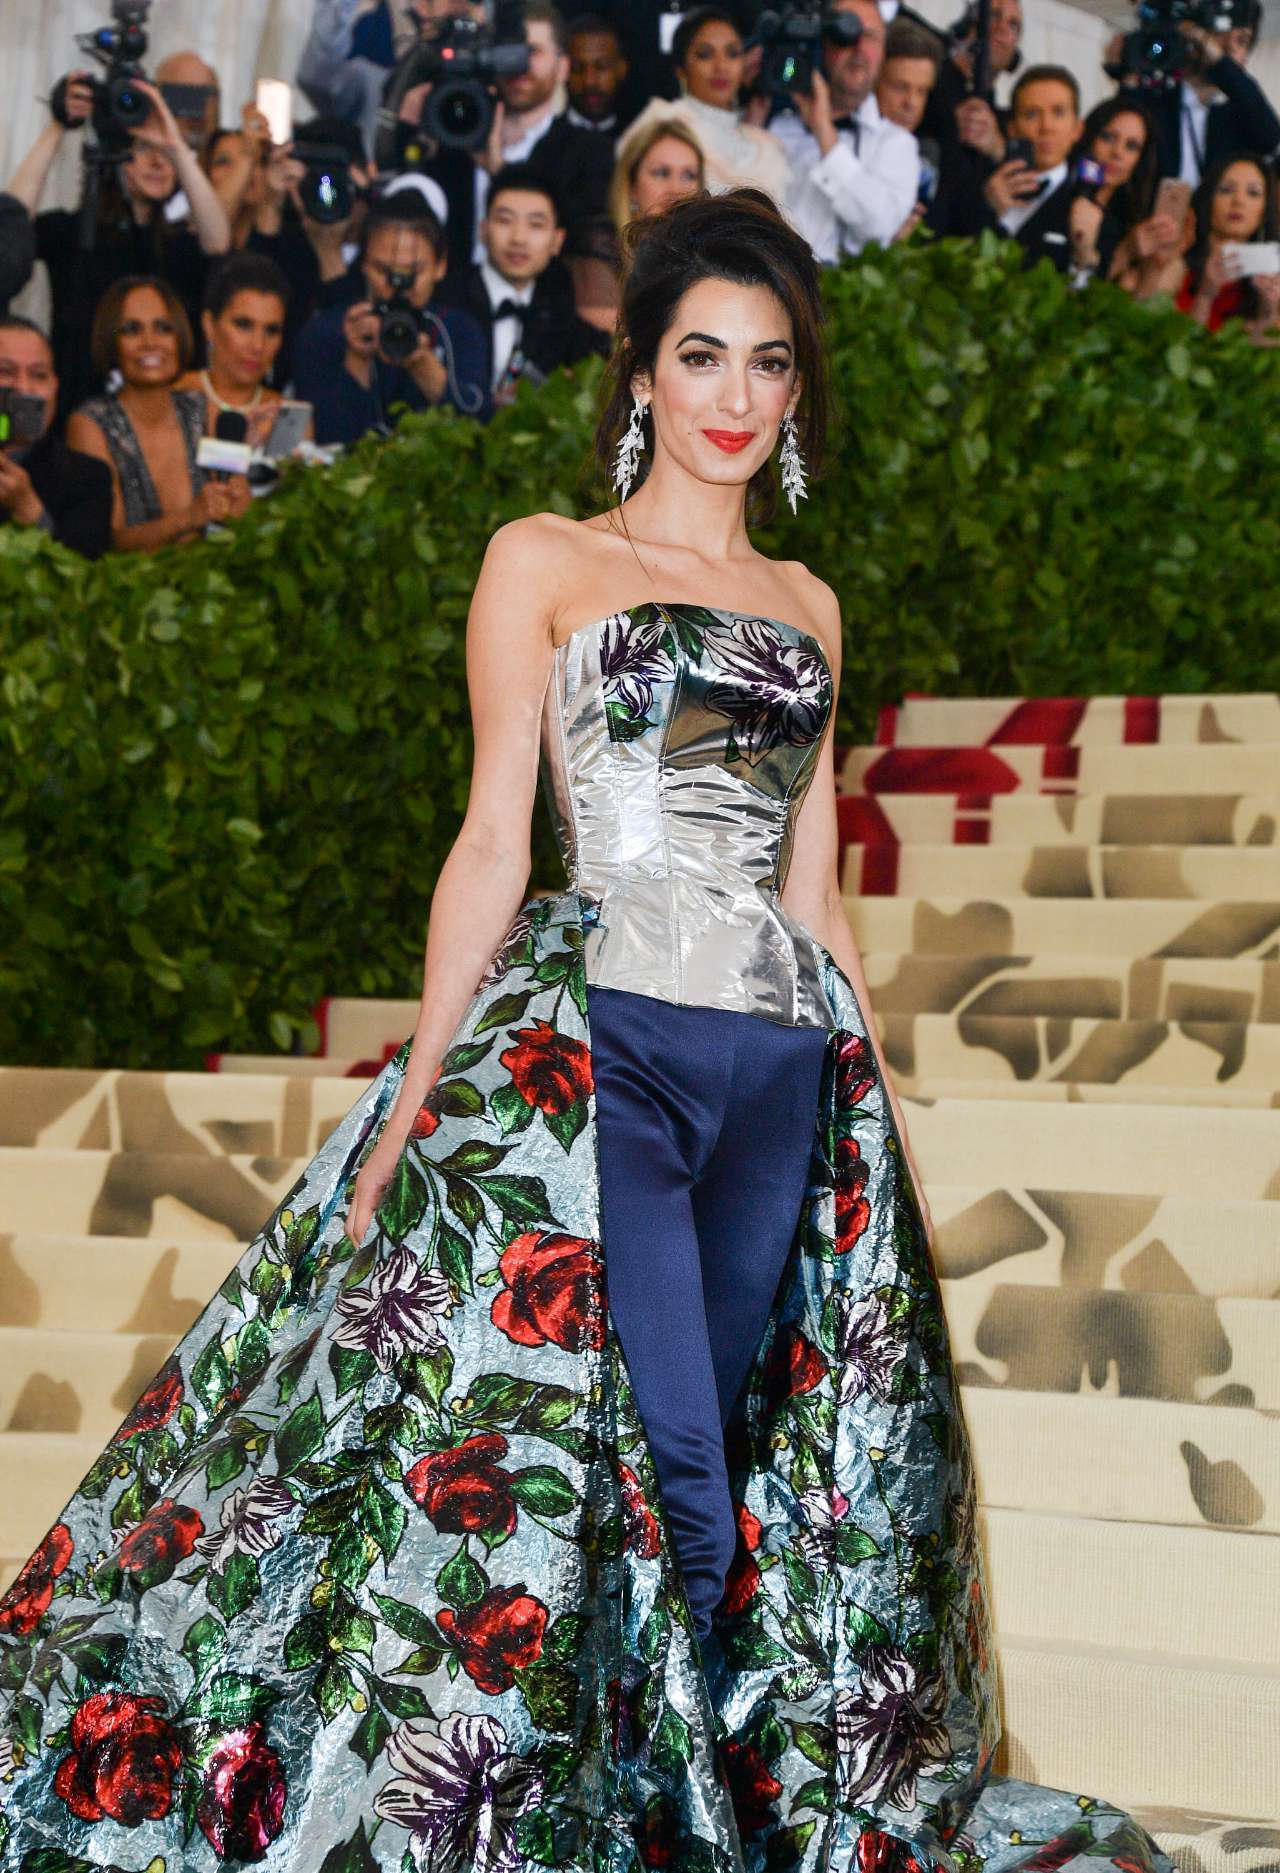 Amal Clooney S Met Gala Outfit Change Infuriates Vogue And